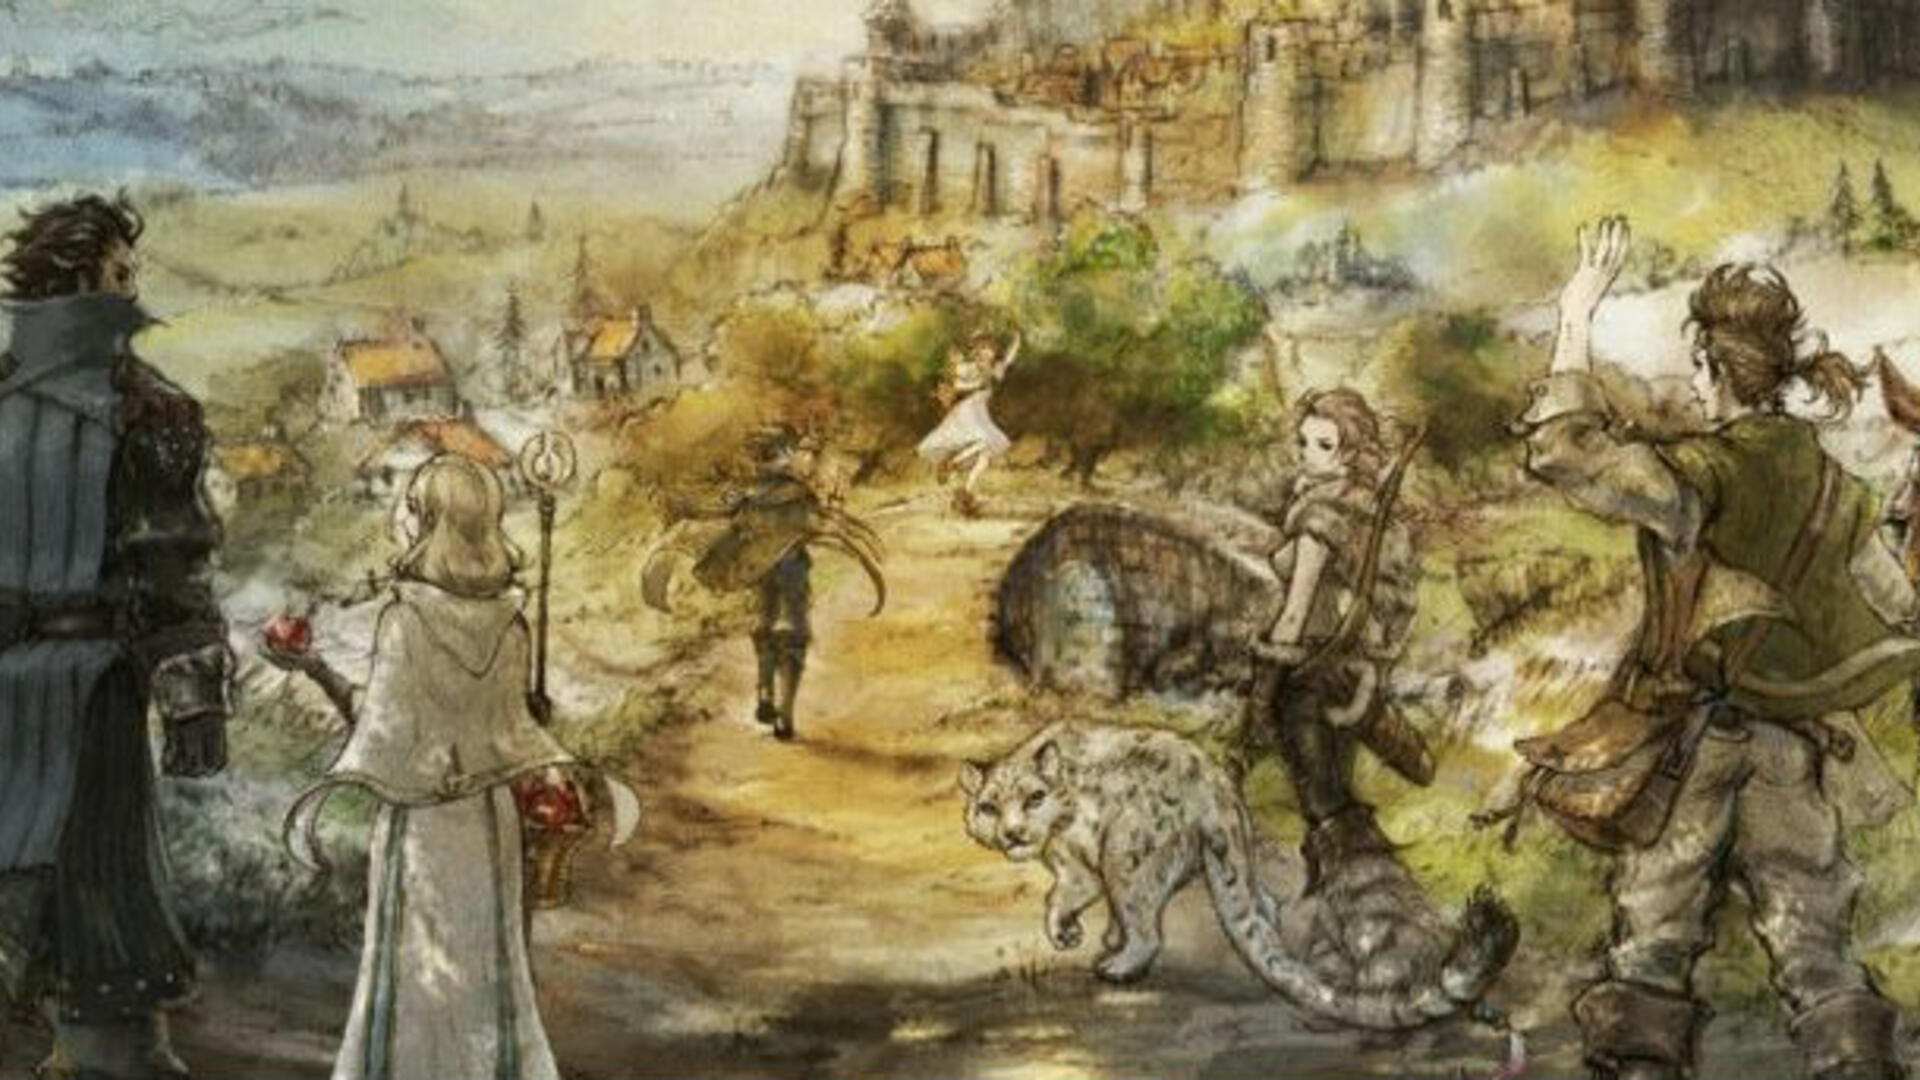 Octopath Traveler Physical Copies Selling Out Fast Across Multiple Retailers